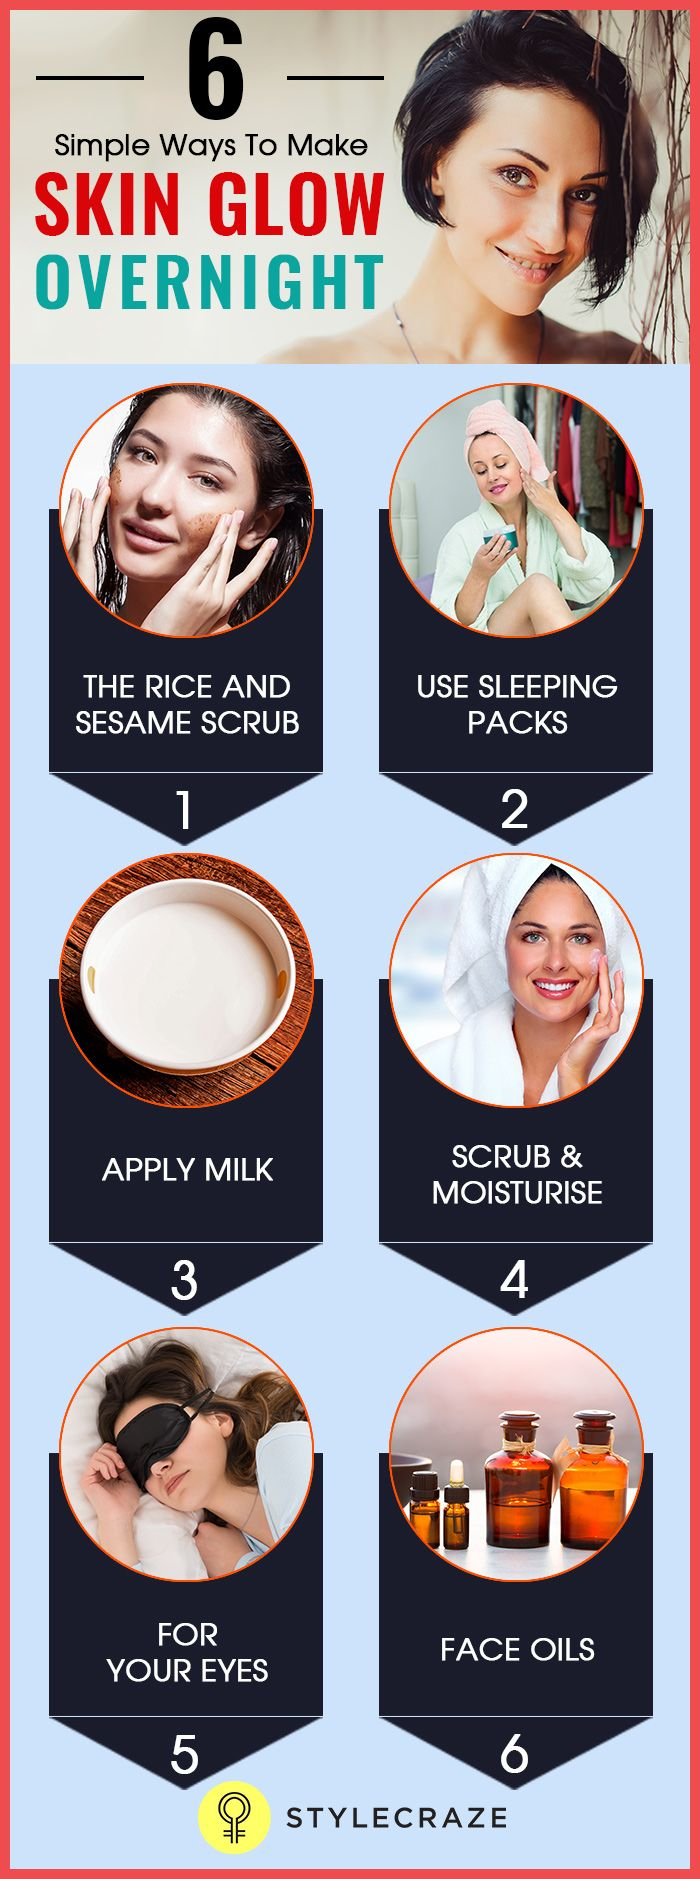 6 Simple Ways To Make Skin Glow Overnight